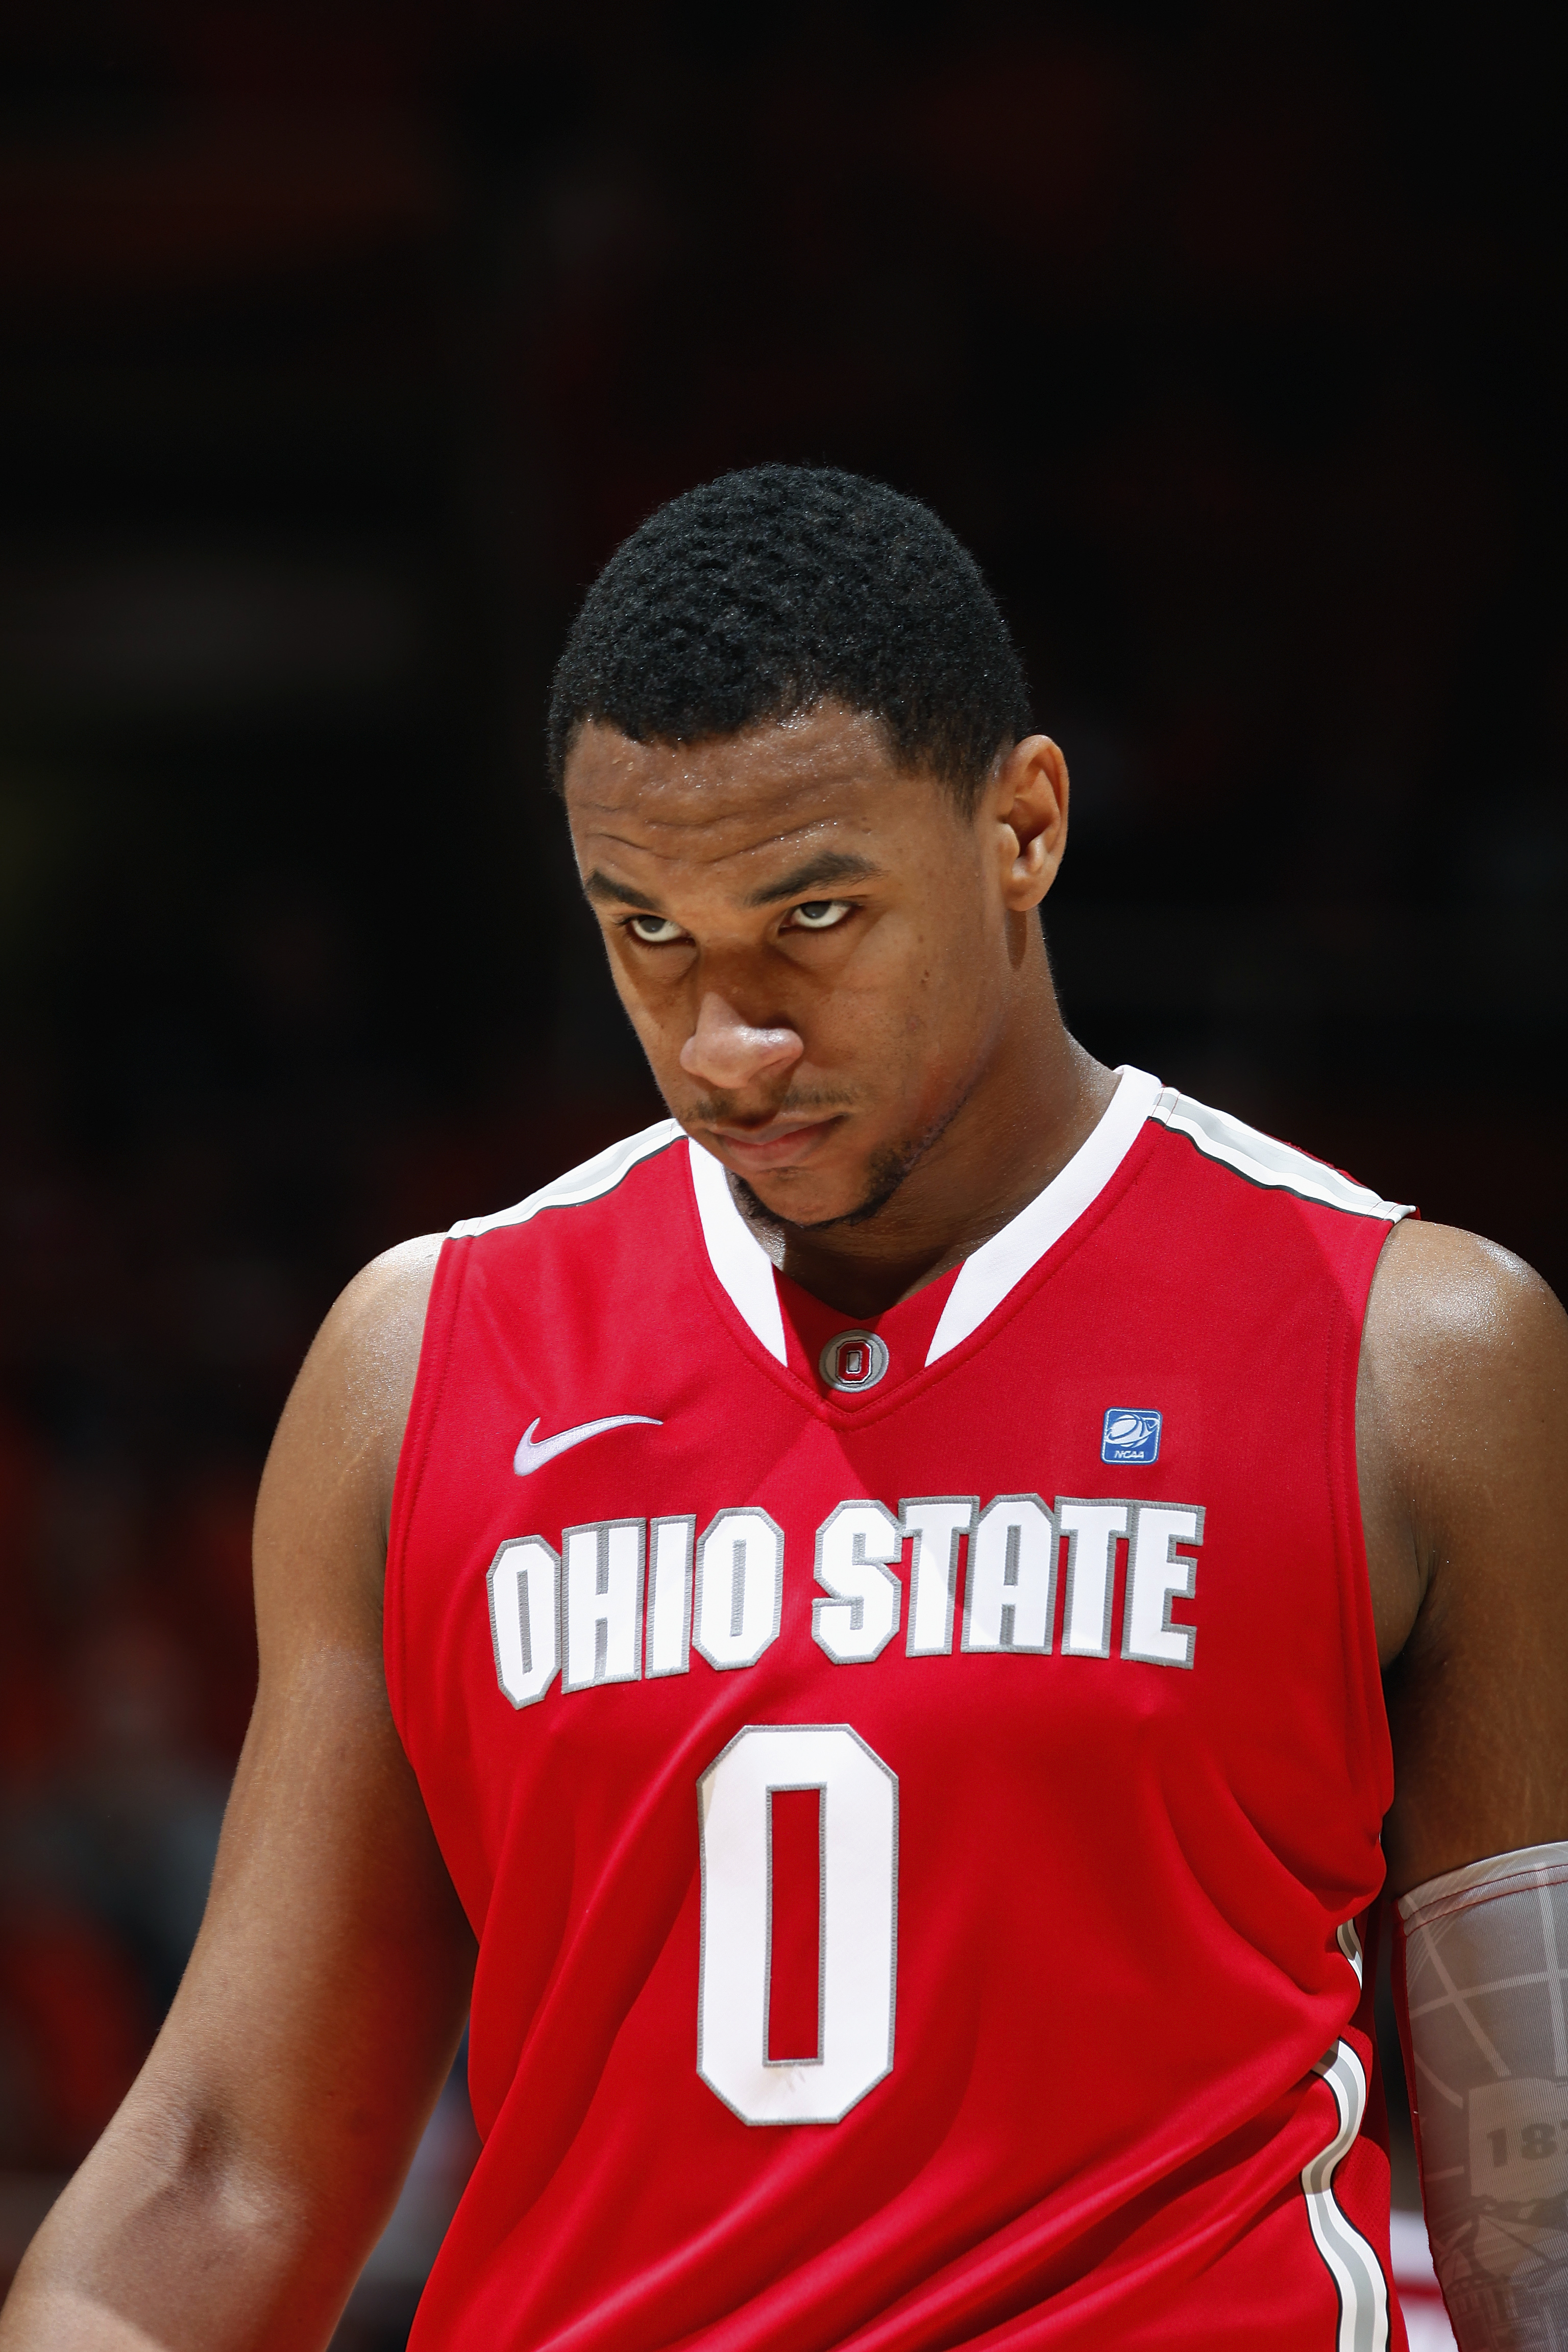 CHAMPAIGN, IL - JANUARY 22: Jared Sullinger #0 of the Ohio State Buckeyes looks on late in the game against the Illinois Fighting Illini at Assembly Hall on January 22, 2011 in Champaign, Illinois. Ohio State won 73-68. (Photo by Joe Robbins/Getty Images)